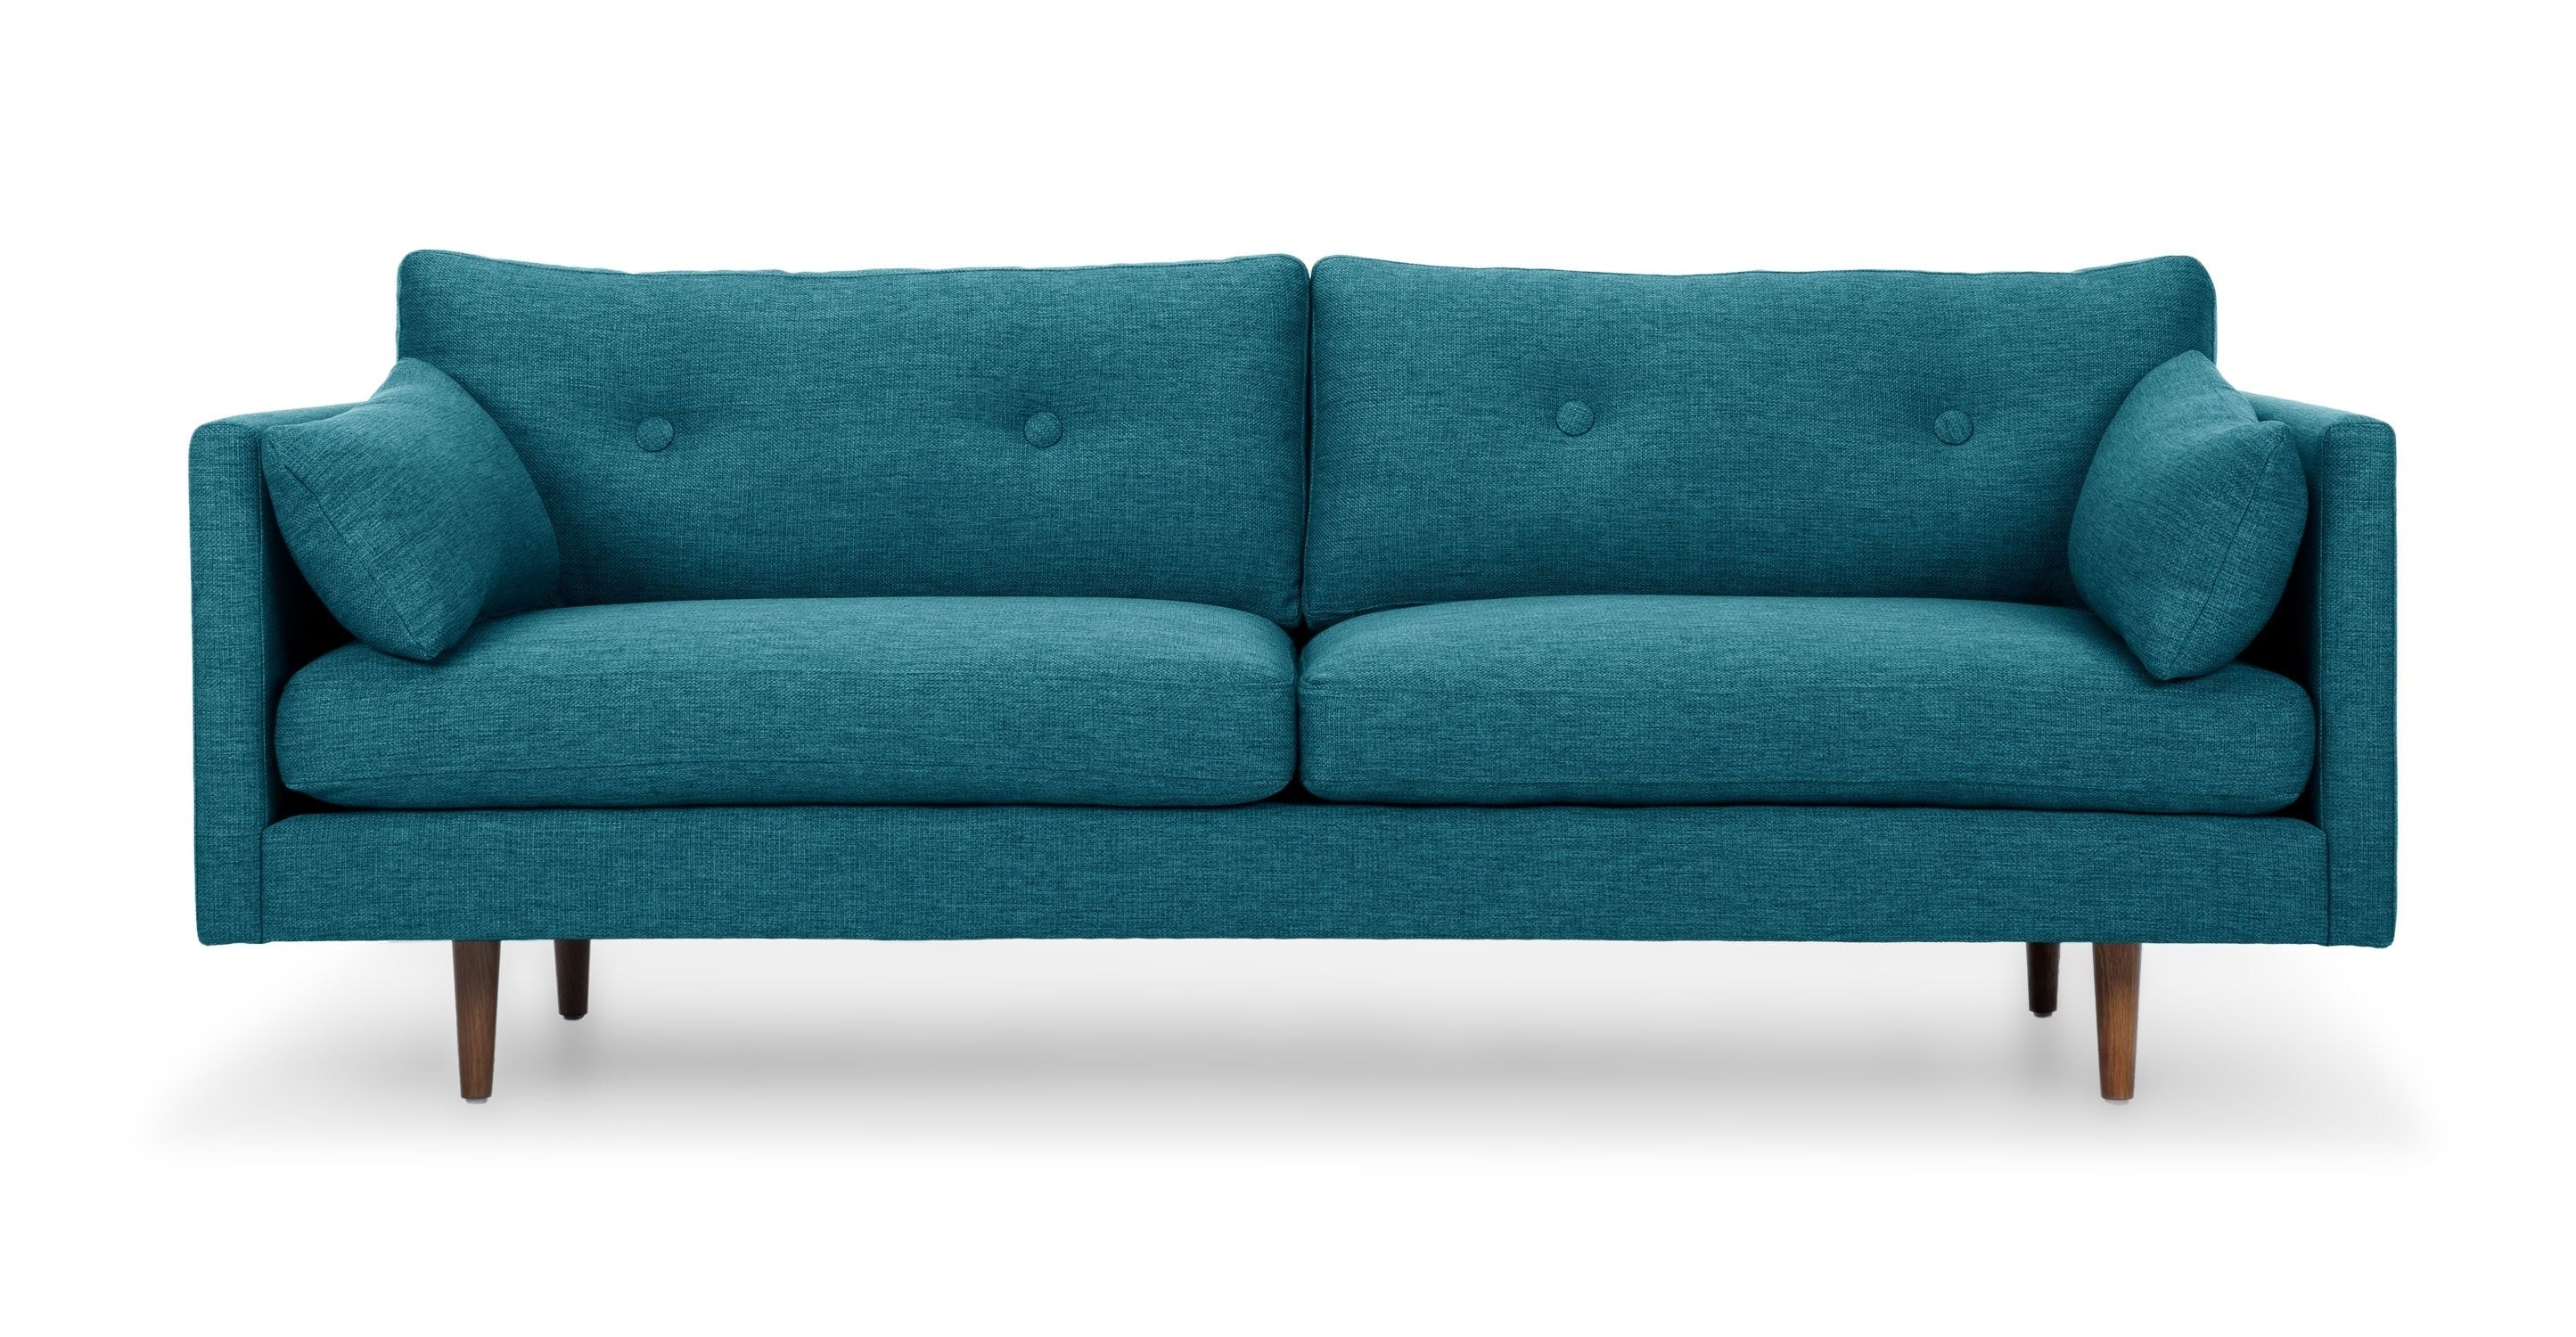 Turquoise Tufted Sofa, 3 Seat, Solid Wood Legs | Article Anton Regarding Turquoise Sofas (Image 10 of 10)